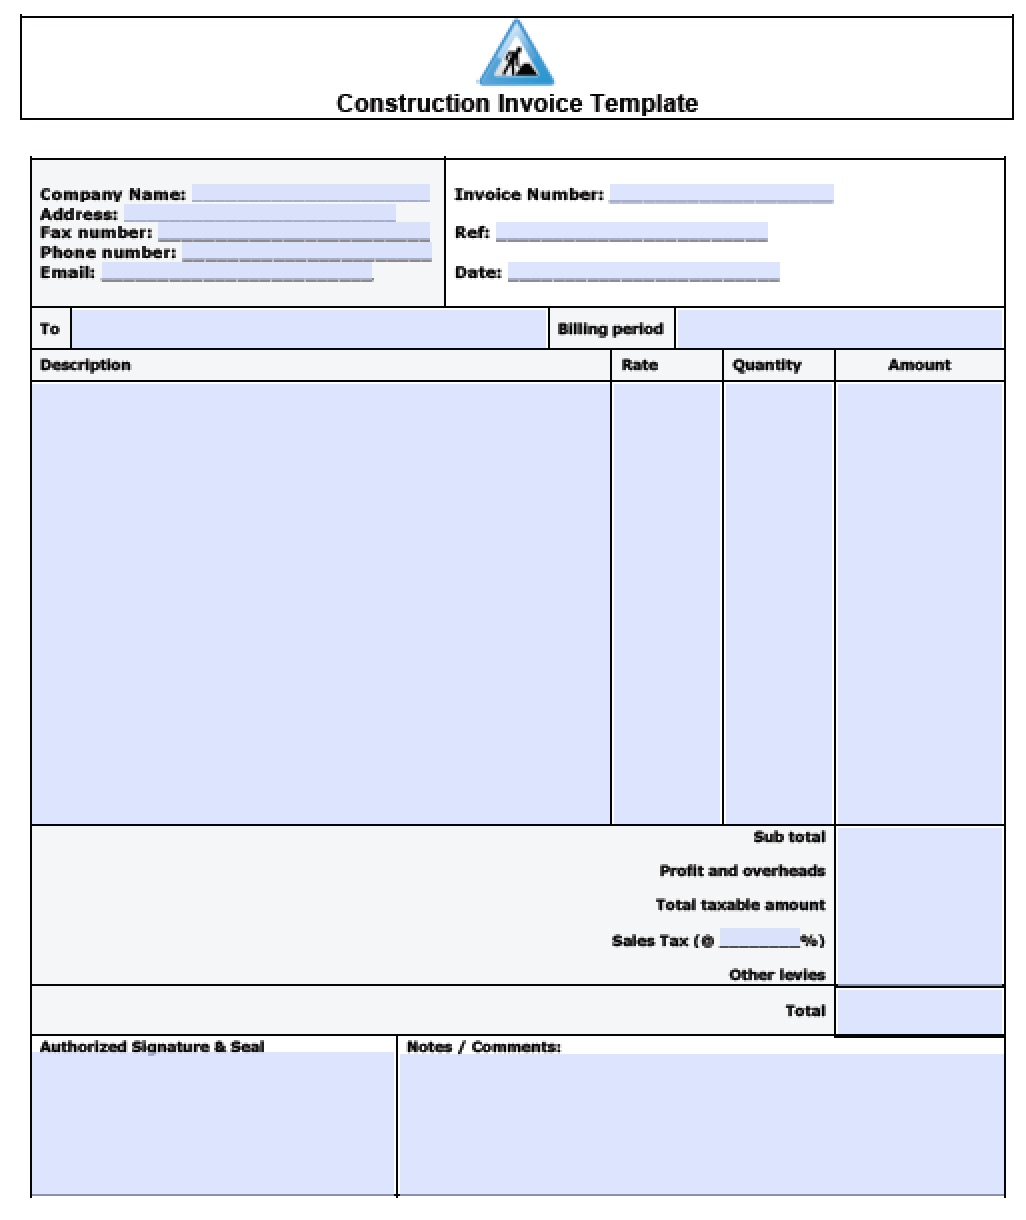 construction invoice template excel pdf word doc